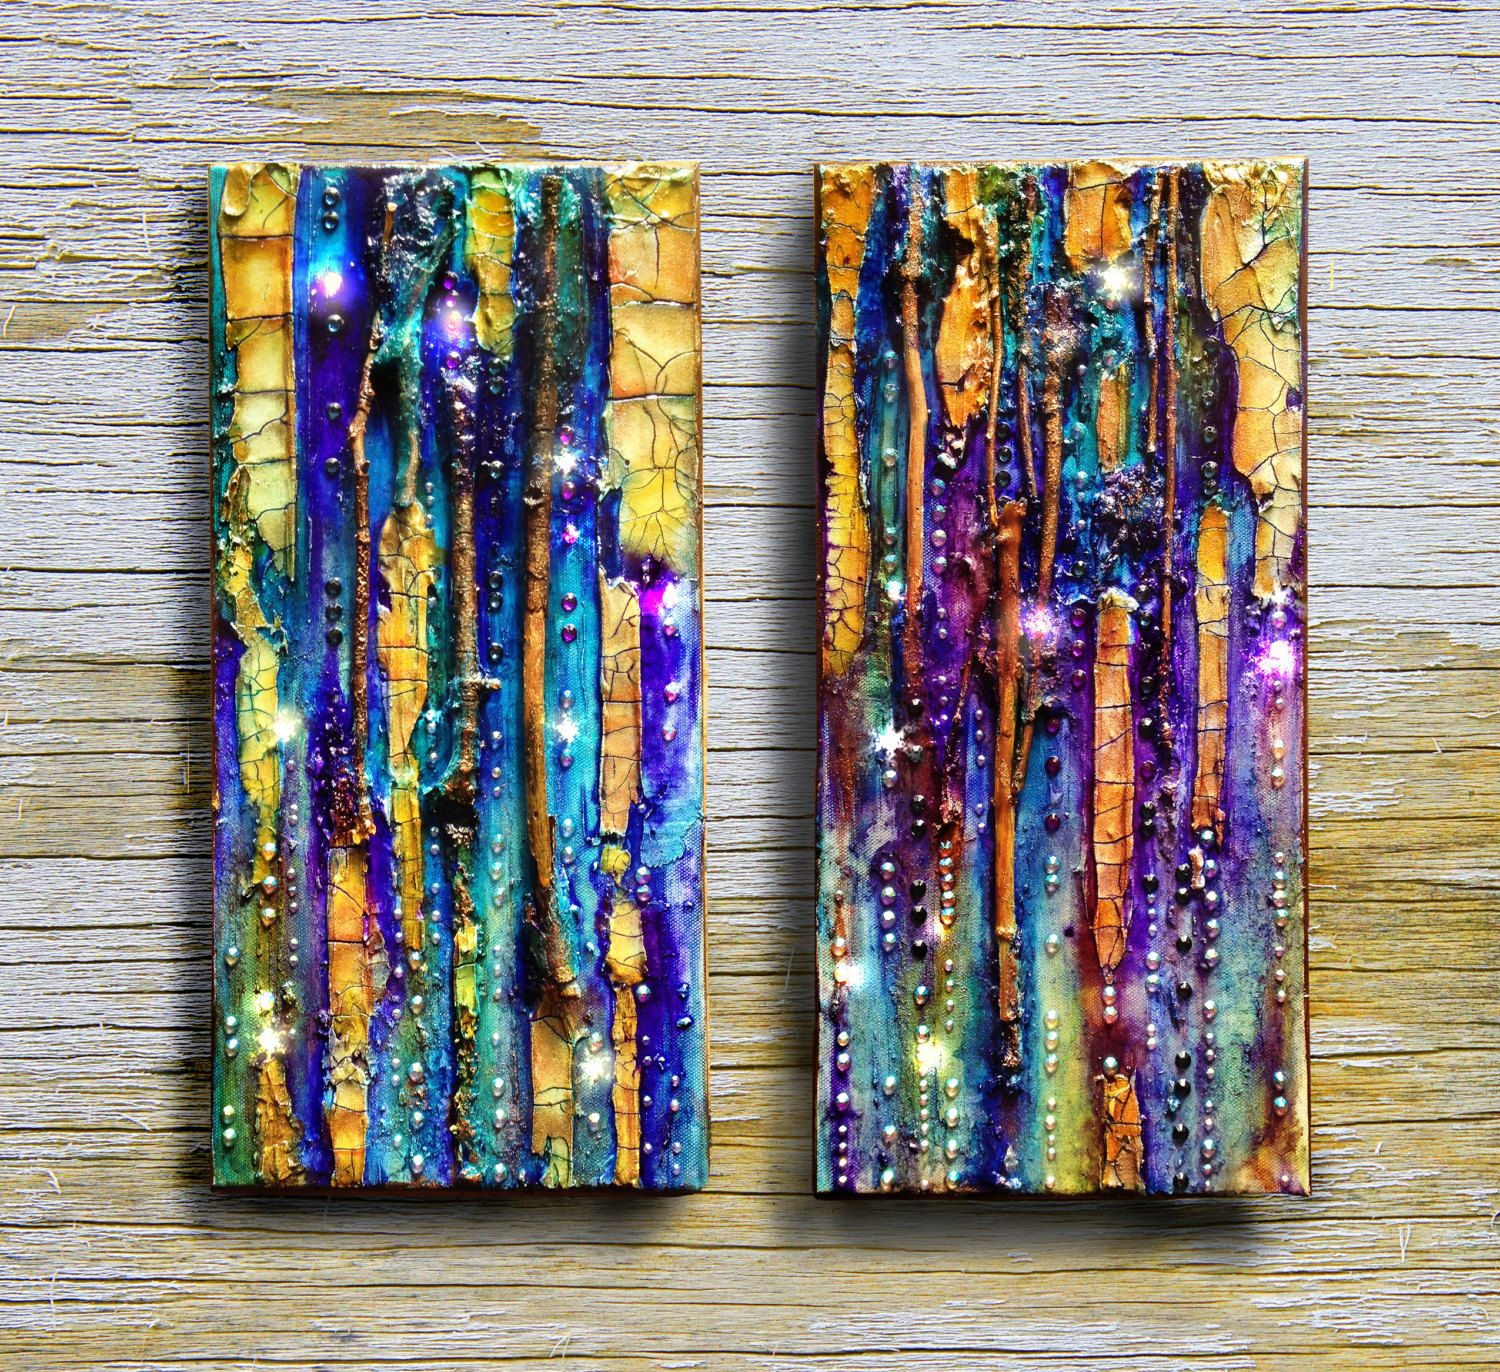 Abstract Canvas, Original Mixed Media Painting Diptych Octopus Garden, Glass,